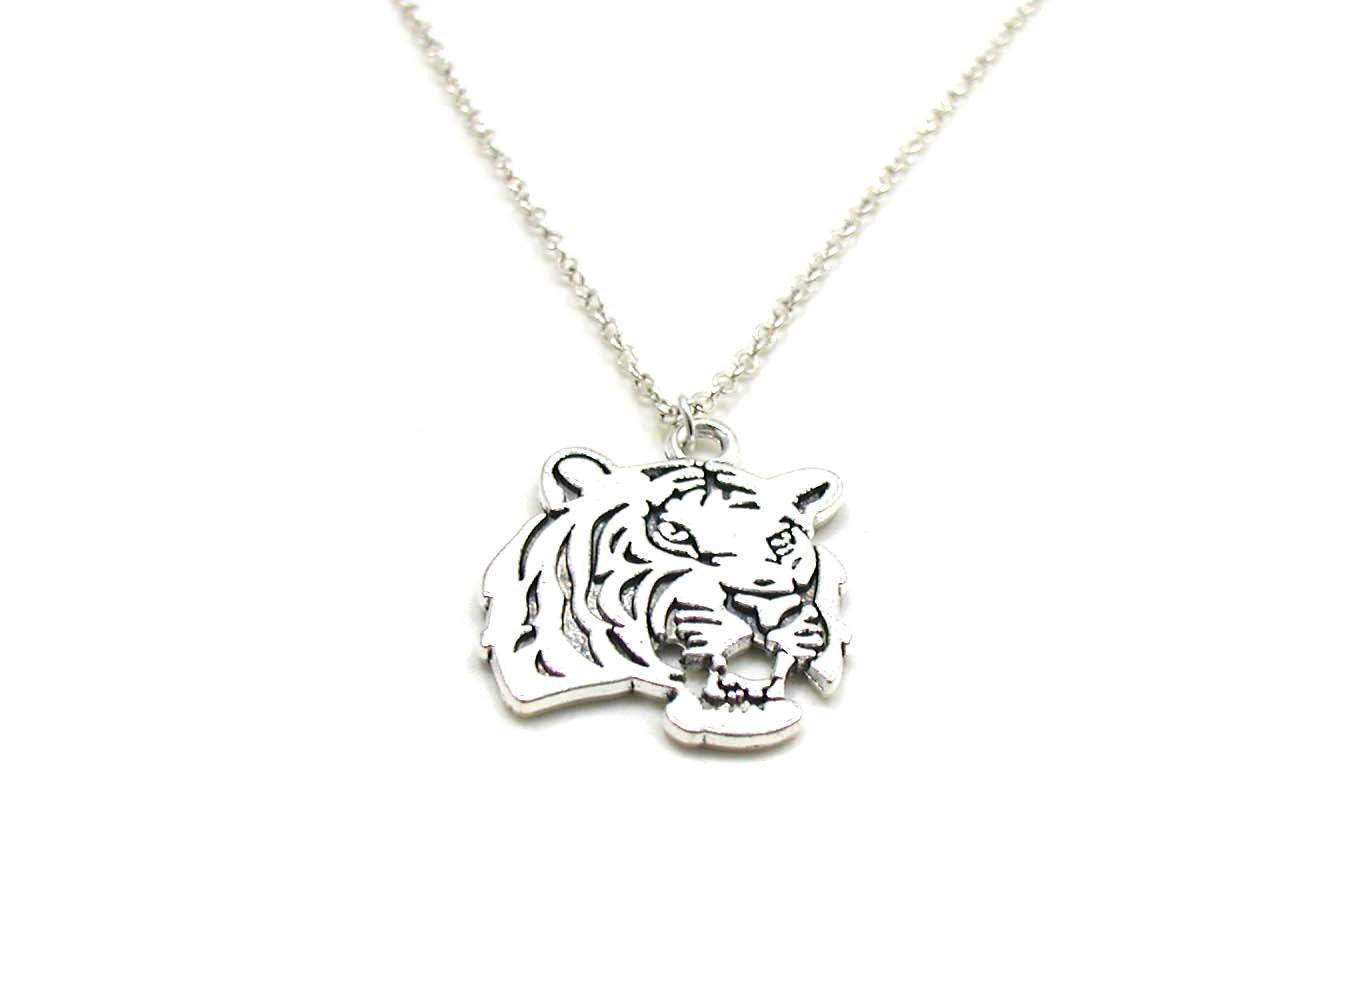 Silver Tiger Necklace Charm Necklace Big Cat Charm Jewelry